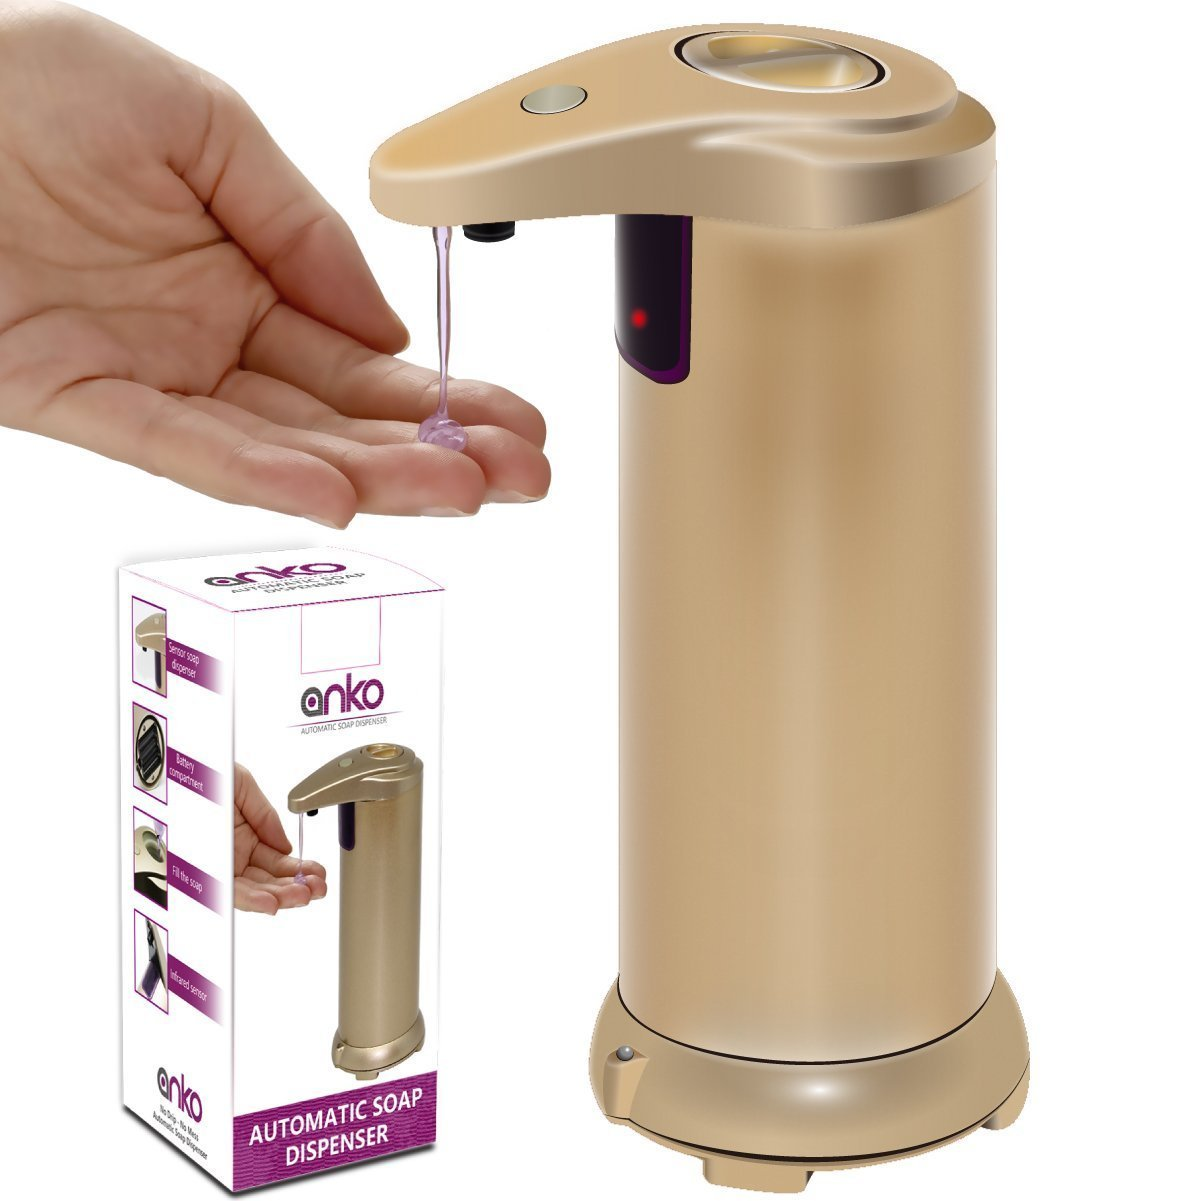 automatic touchless soap dispenser anko sensor stainless steel soap dispenser with waterproof base suitable - Automatic Soap Dispenser